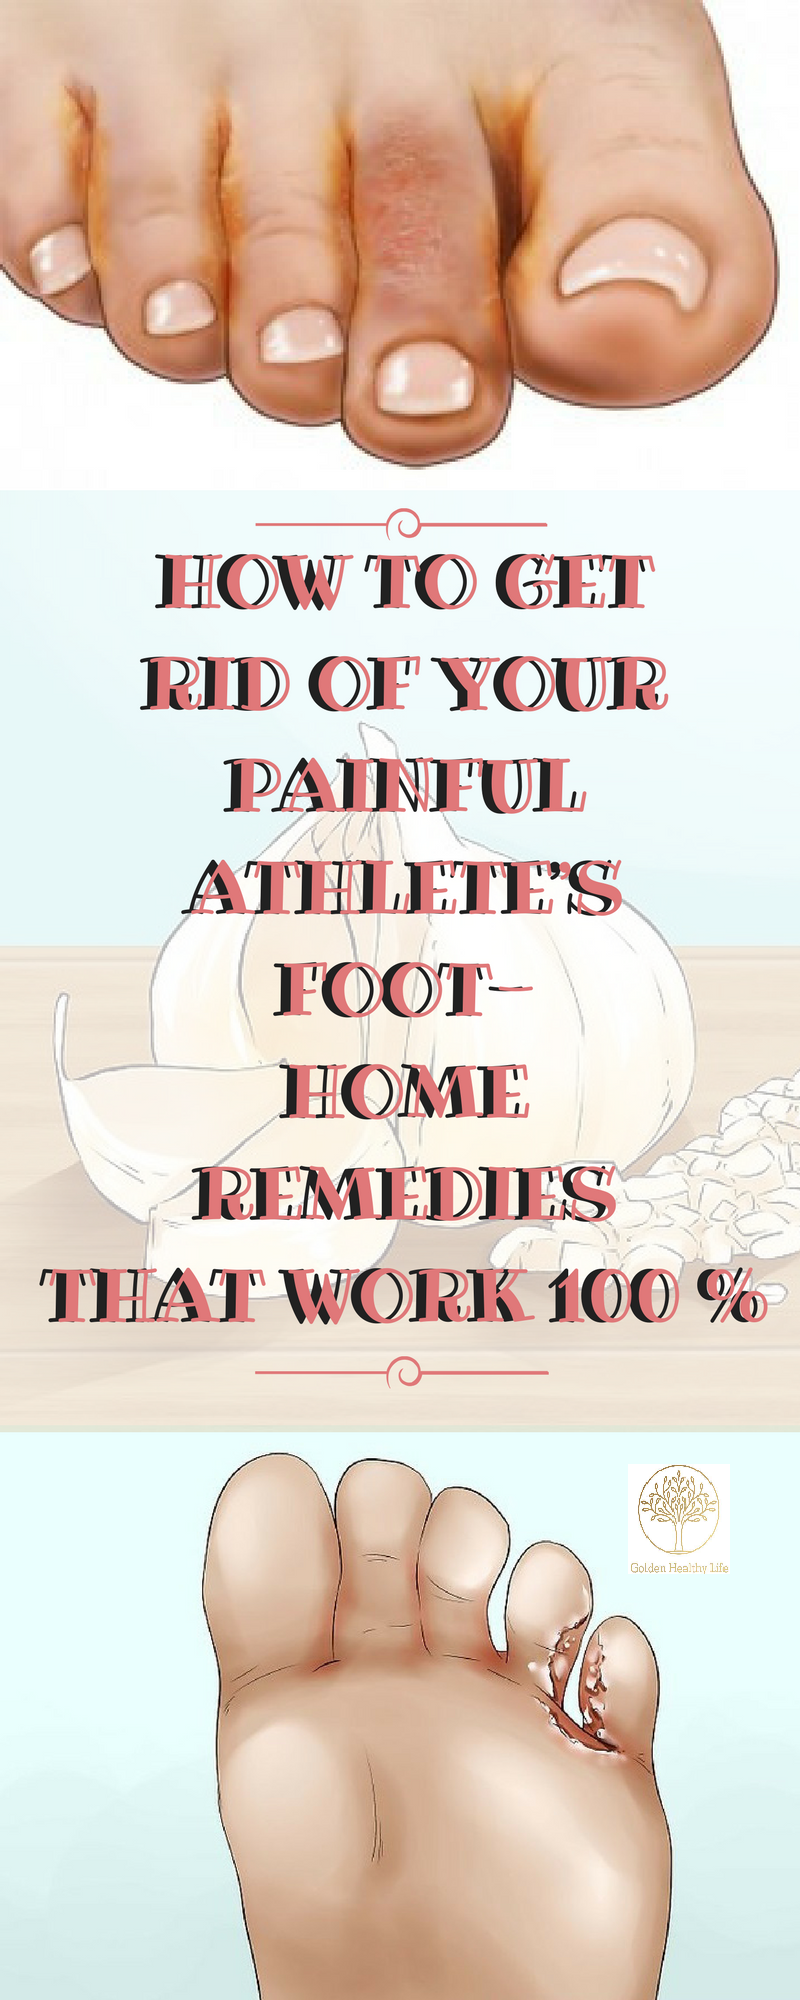 Athleteus foot is a fungal infection that usually thrives in warm